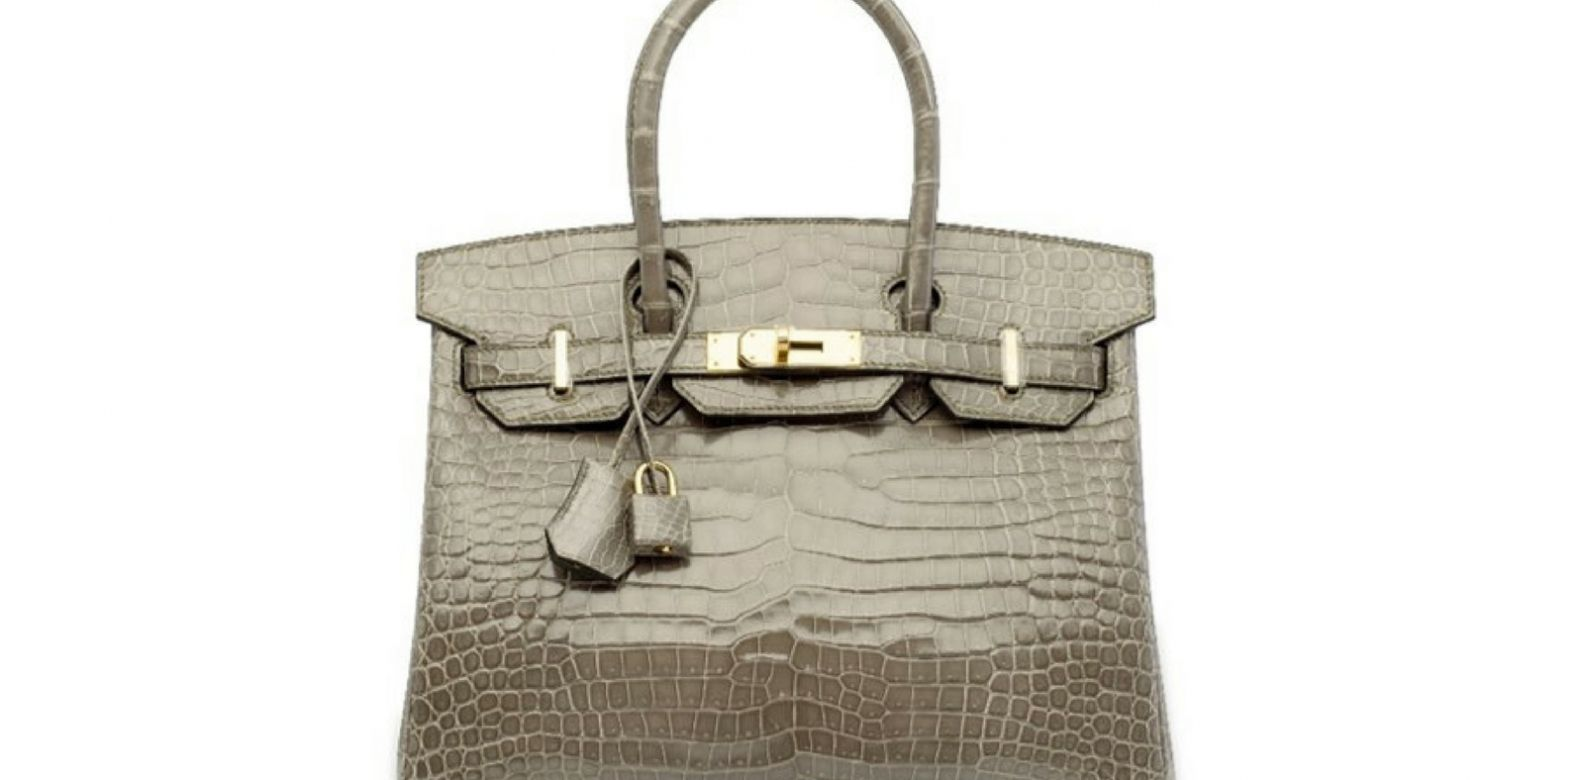 Gris tourterelle porosus crocodile Birkin 30 with gold hardware, Hermès, 2017. (Photo: Courtesy of Christie's)